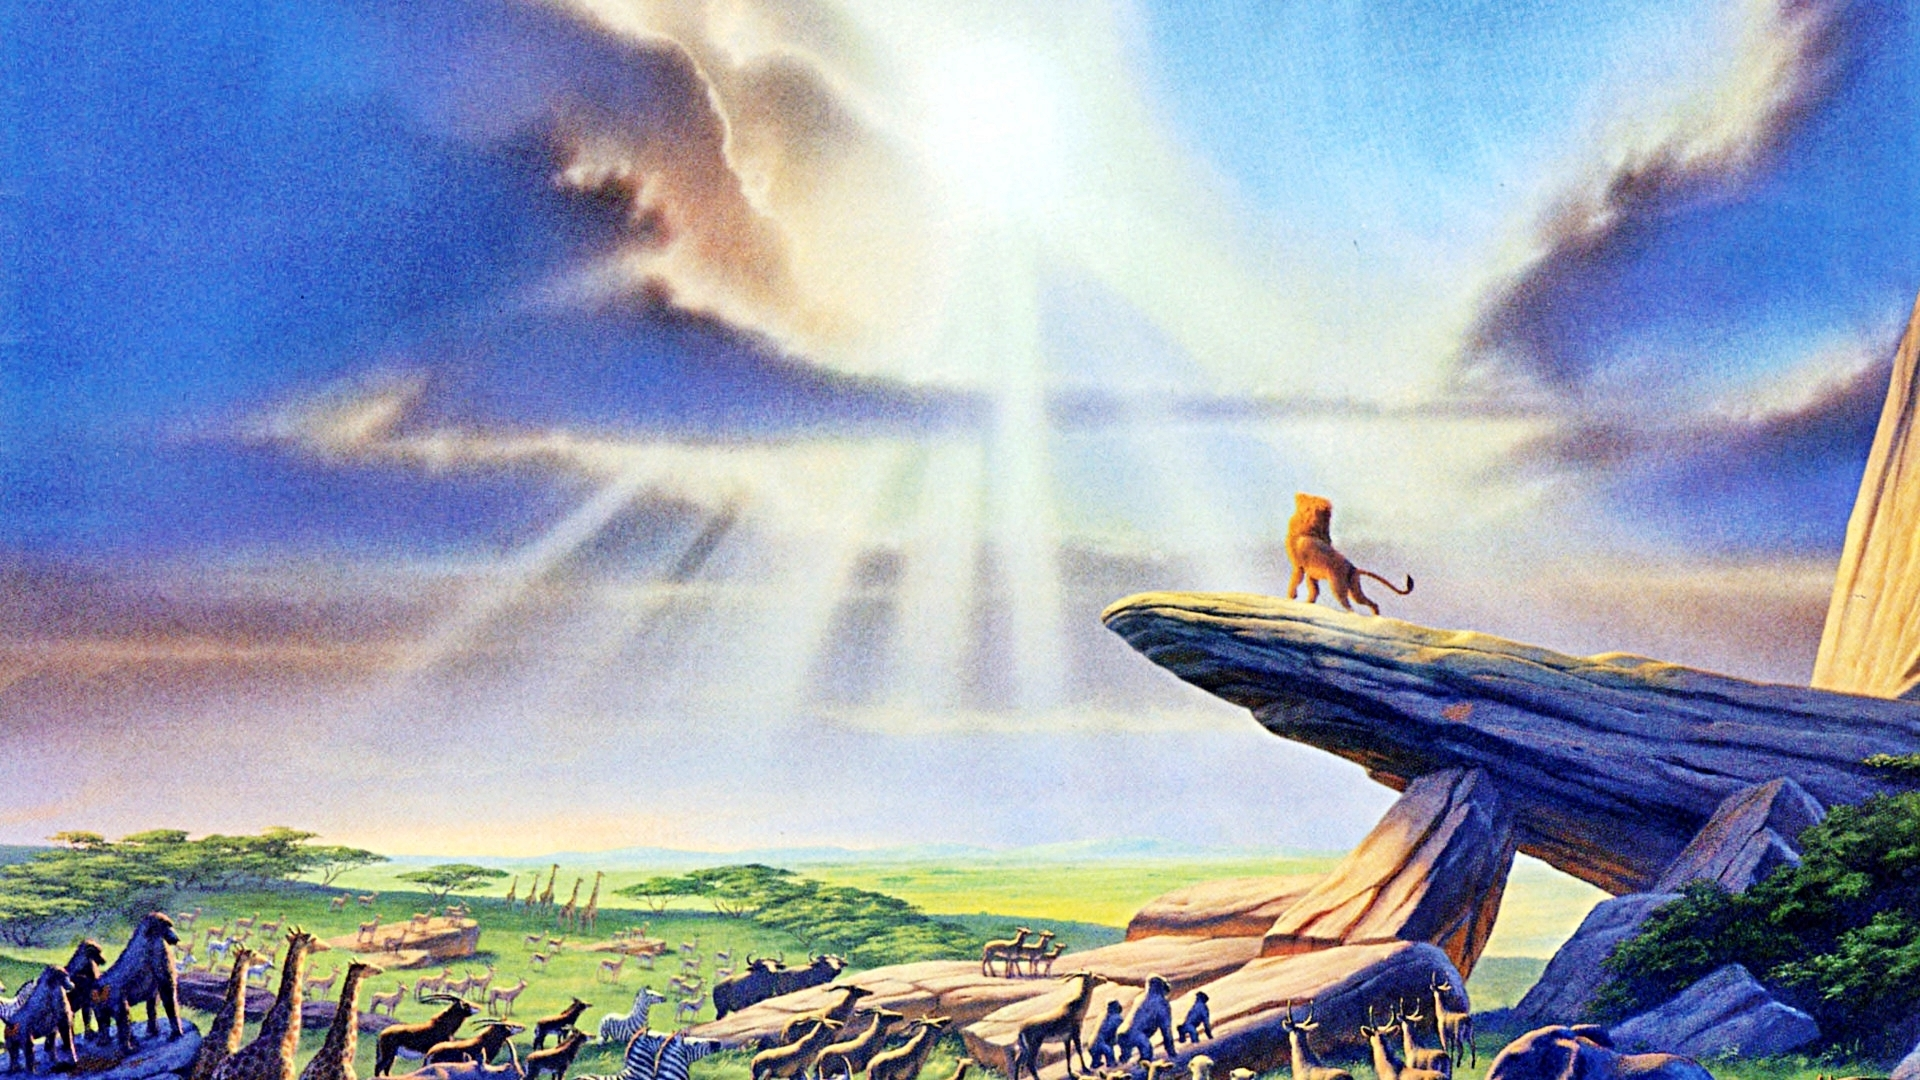 The Lion King Images Pride Rock Hd Wallpaper And Background Photos